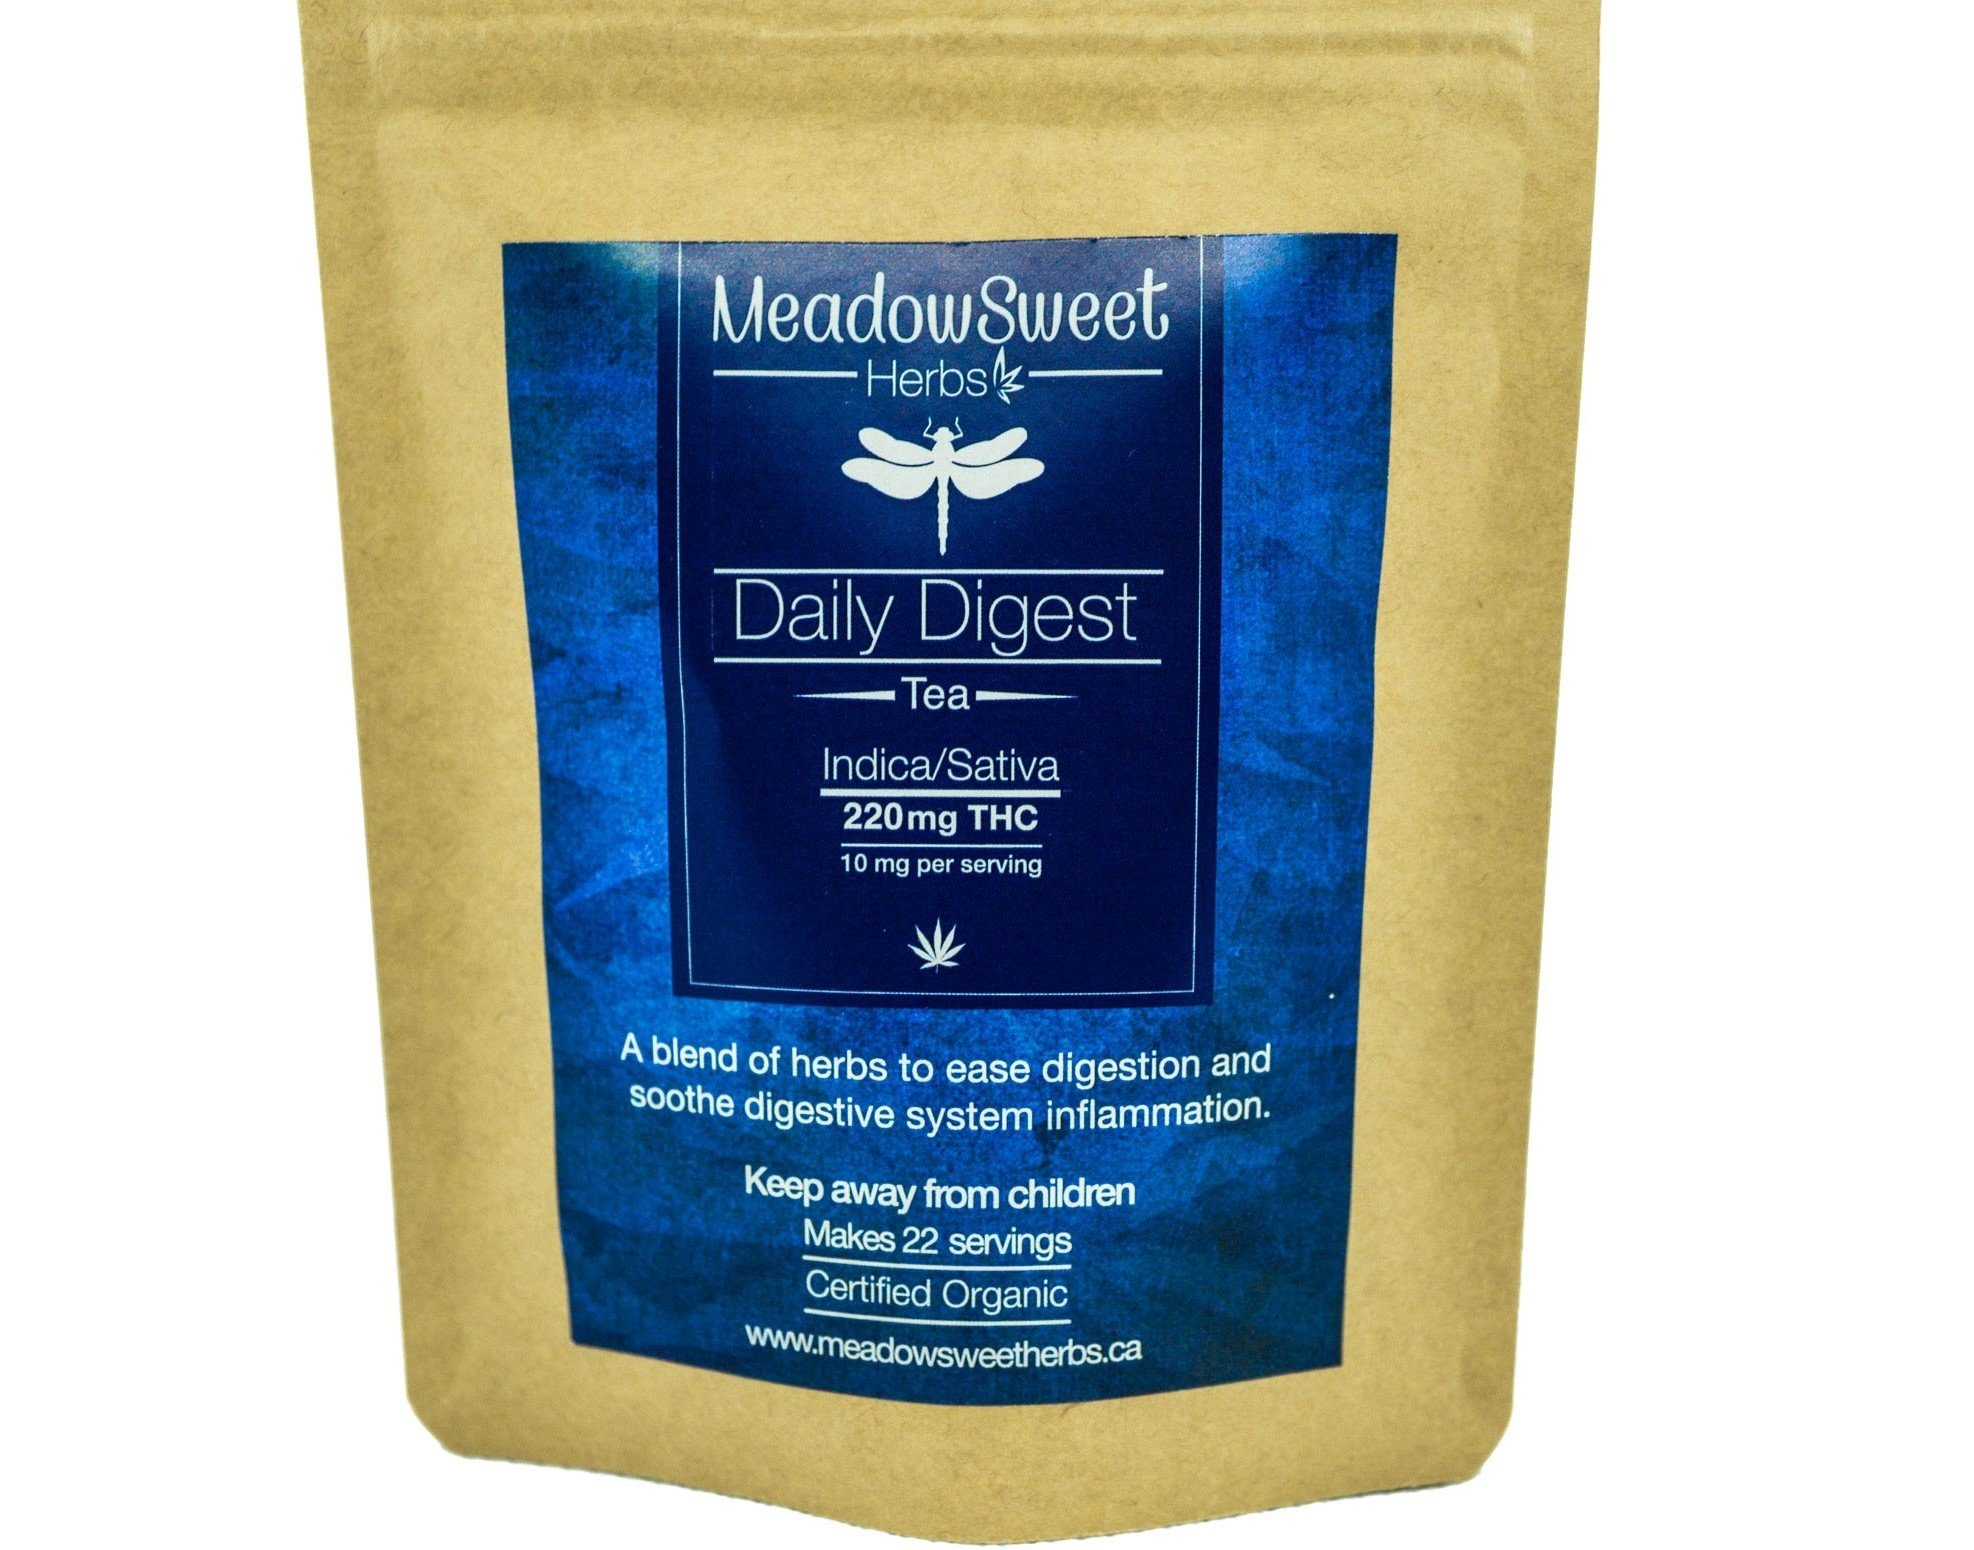 Daily Digest Tea by MeadowSweet Herbs (220mg THC) 01151